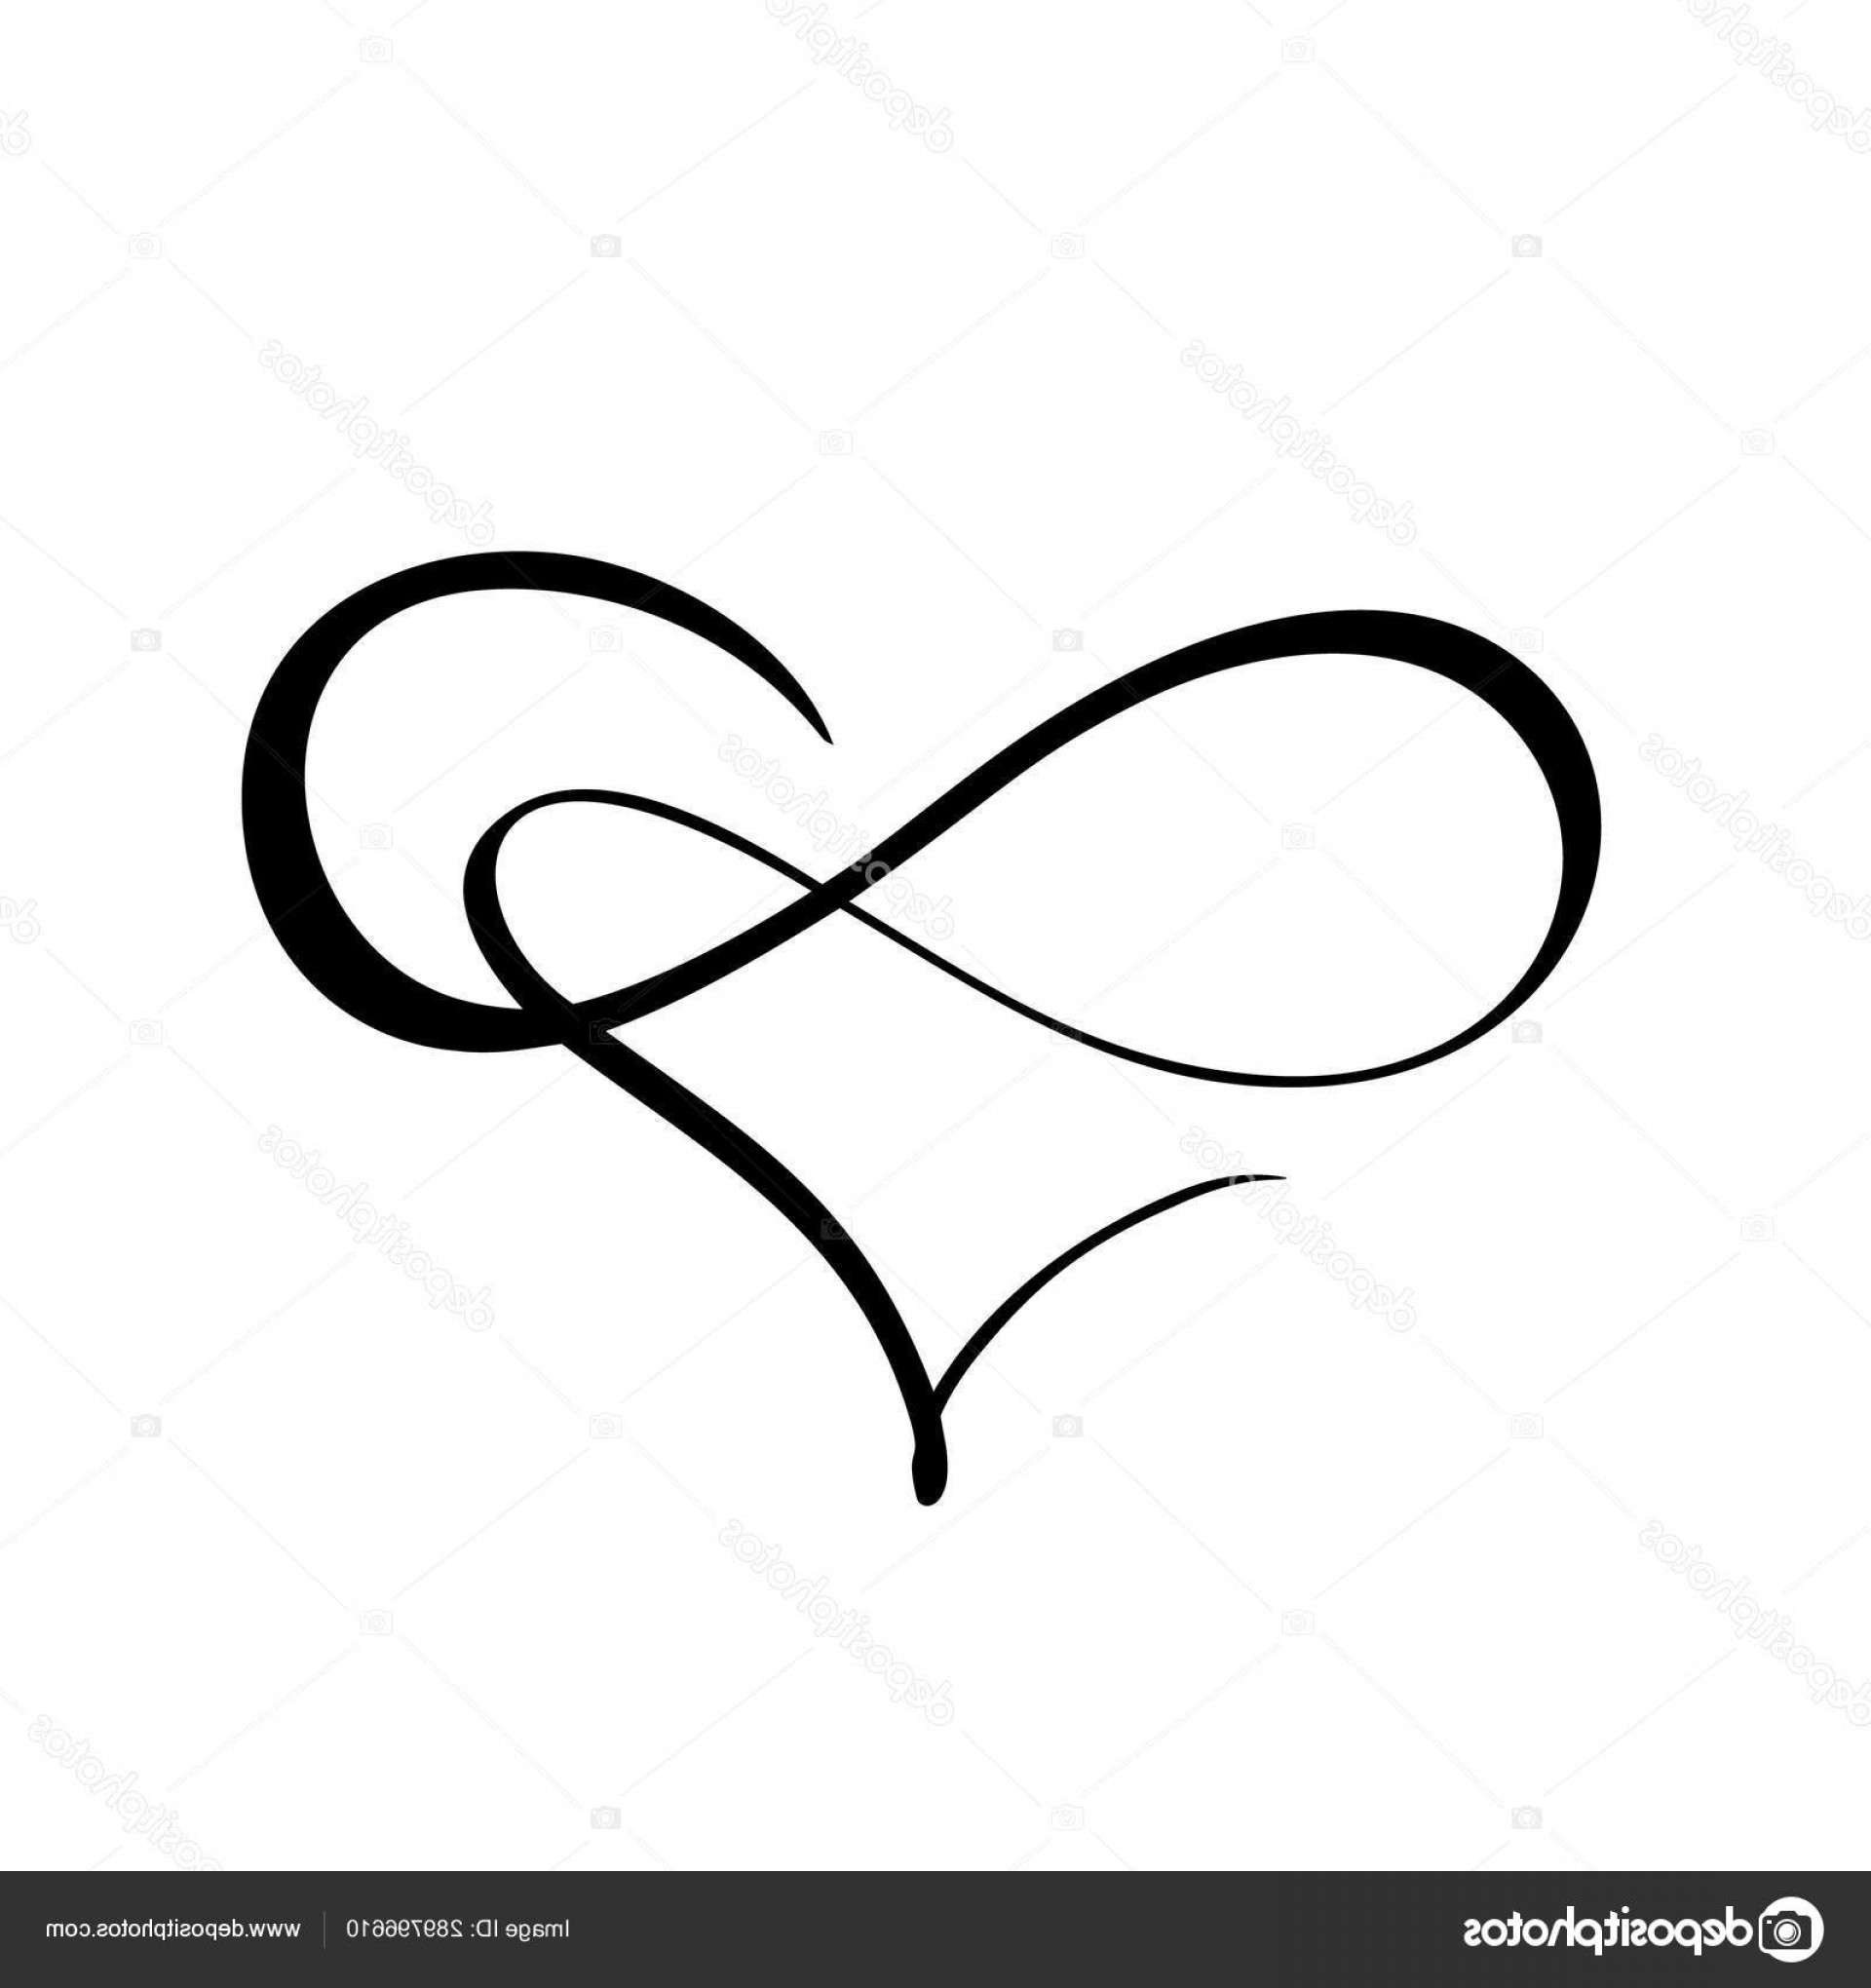 Vector Infinity Symbol Hearts: Stock Illustration Vector Black Heart With Infinity